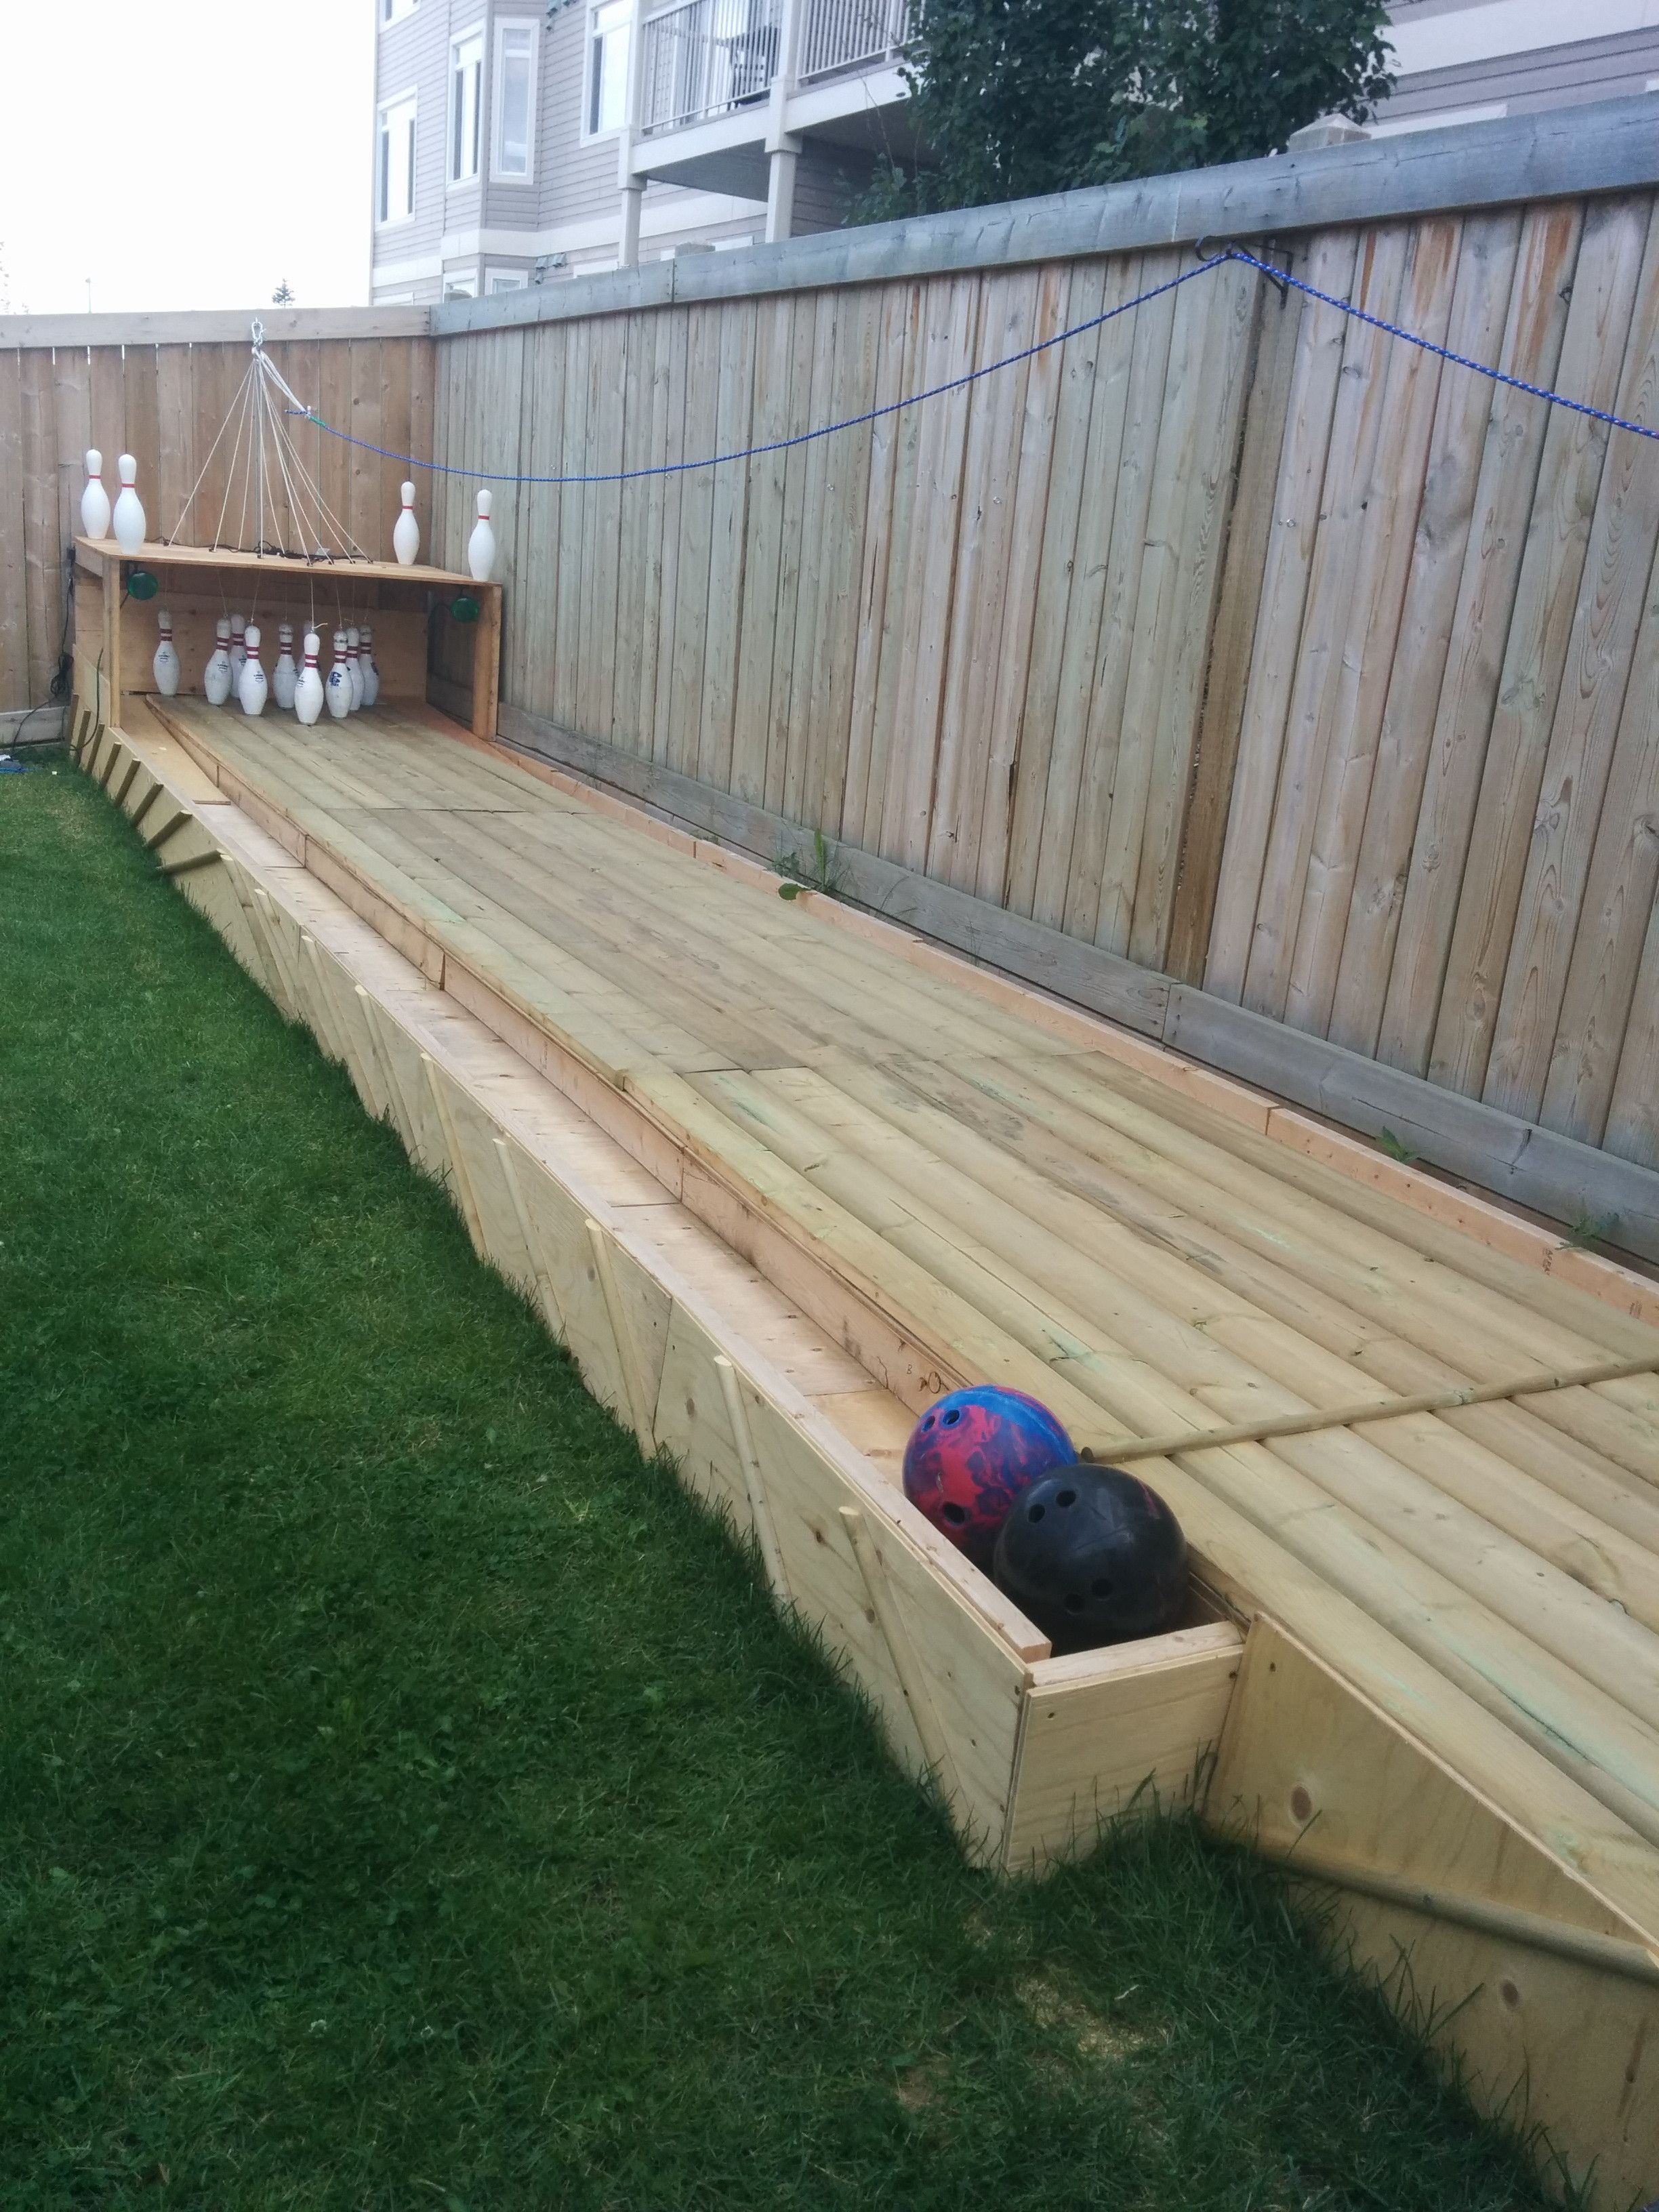 Diy Backyard Bowling Alley Post Backyard Diy Backyard Backyard Fun